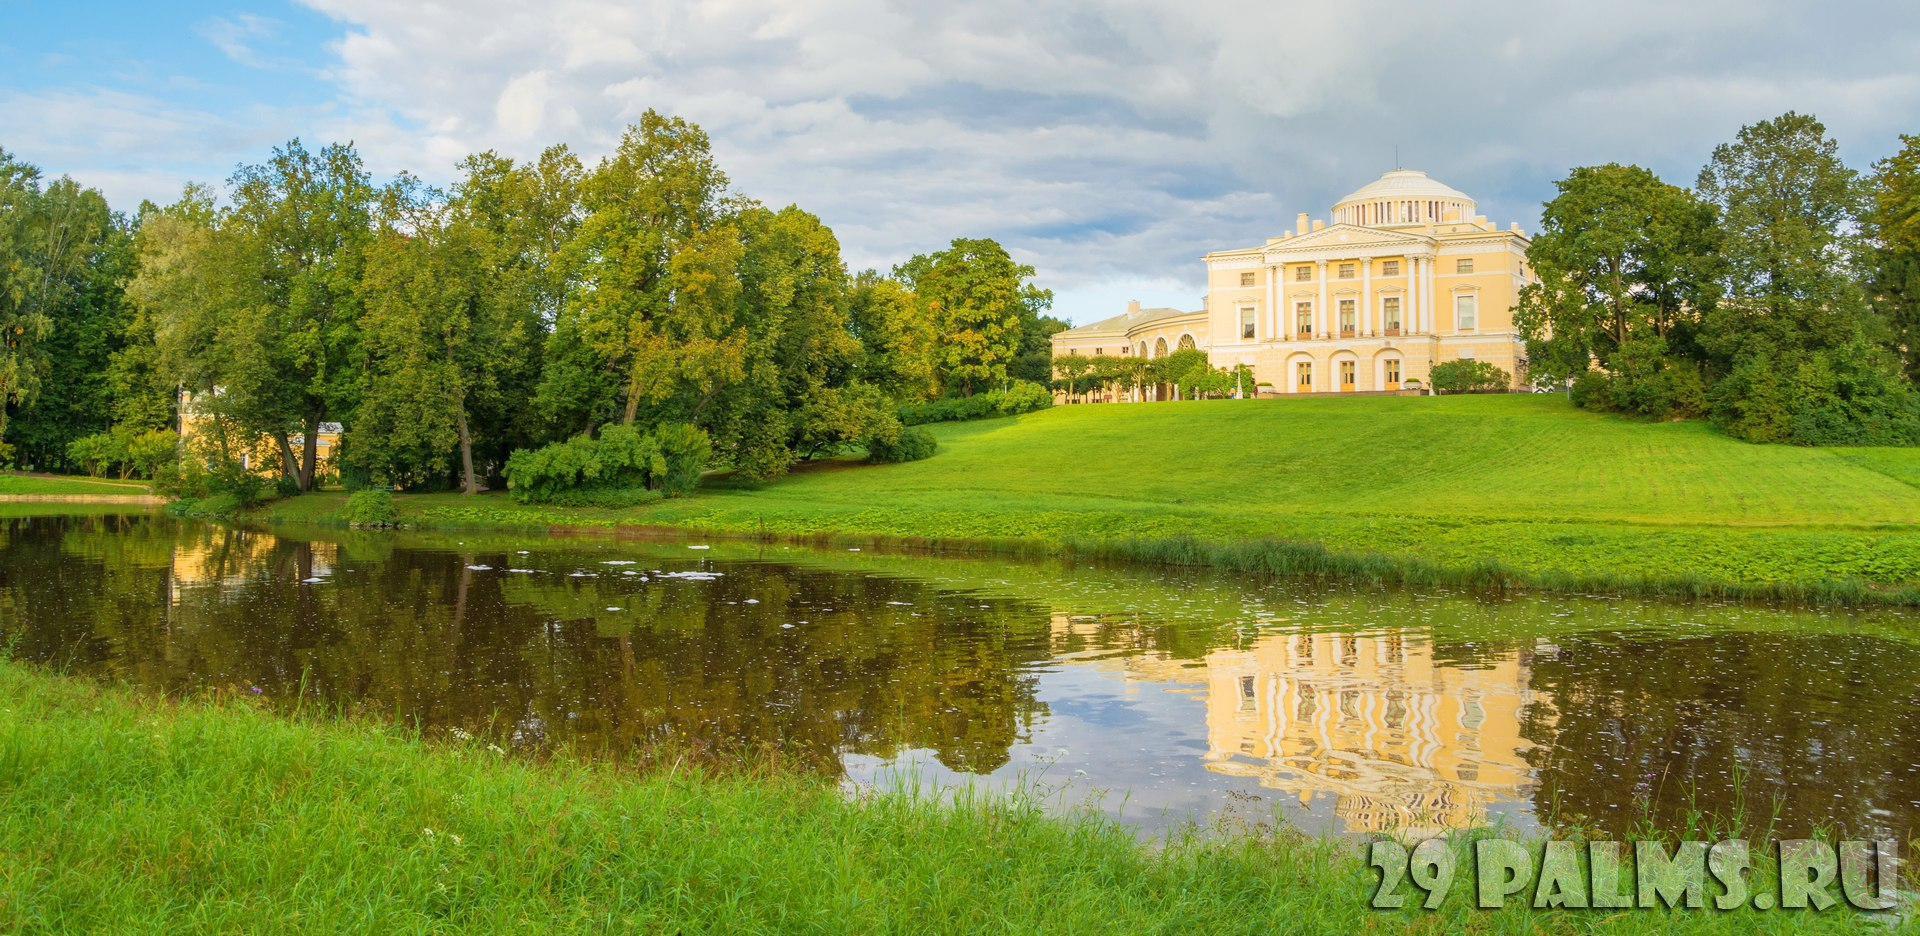 Государственный музей-заповедник Павловск. Pavlovsk Palace on the bank of the river Slavyanka in Pavlovsky Park in the suburbs of St. Petersburg. Фото IrinaDance-Dep